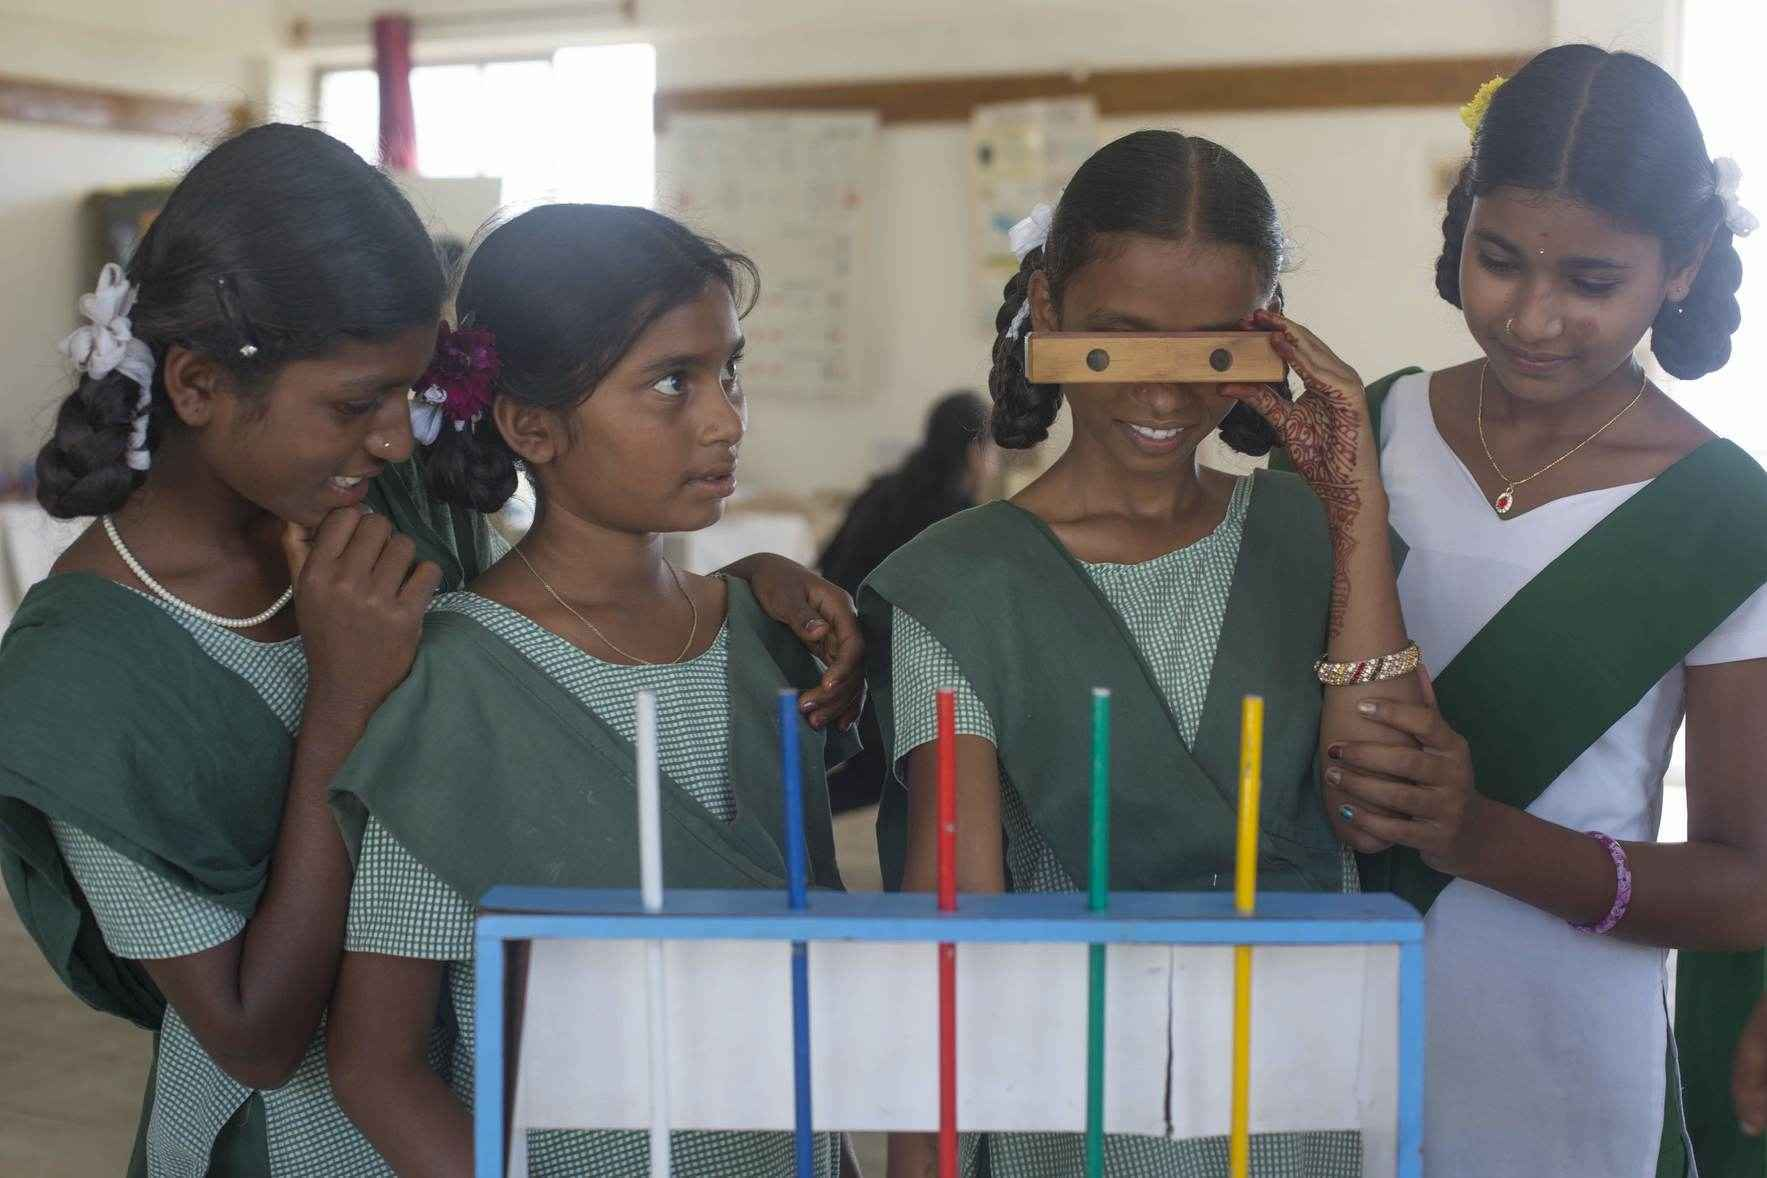 Donate to spark curiosity and creativity among children in India through hands-on science education.  image